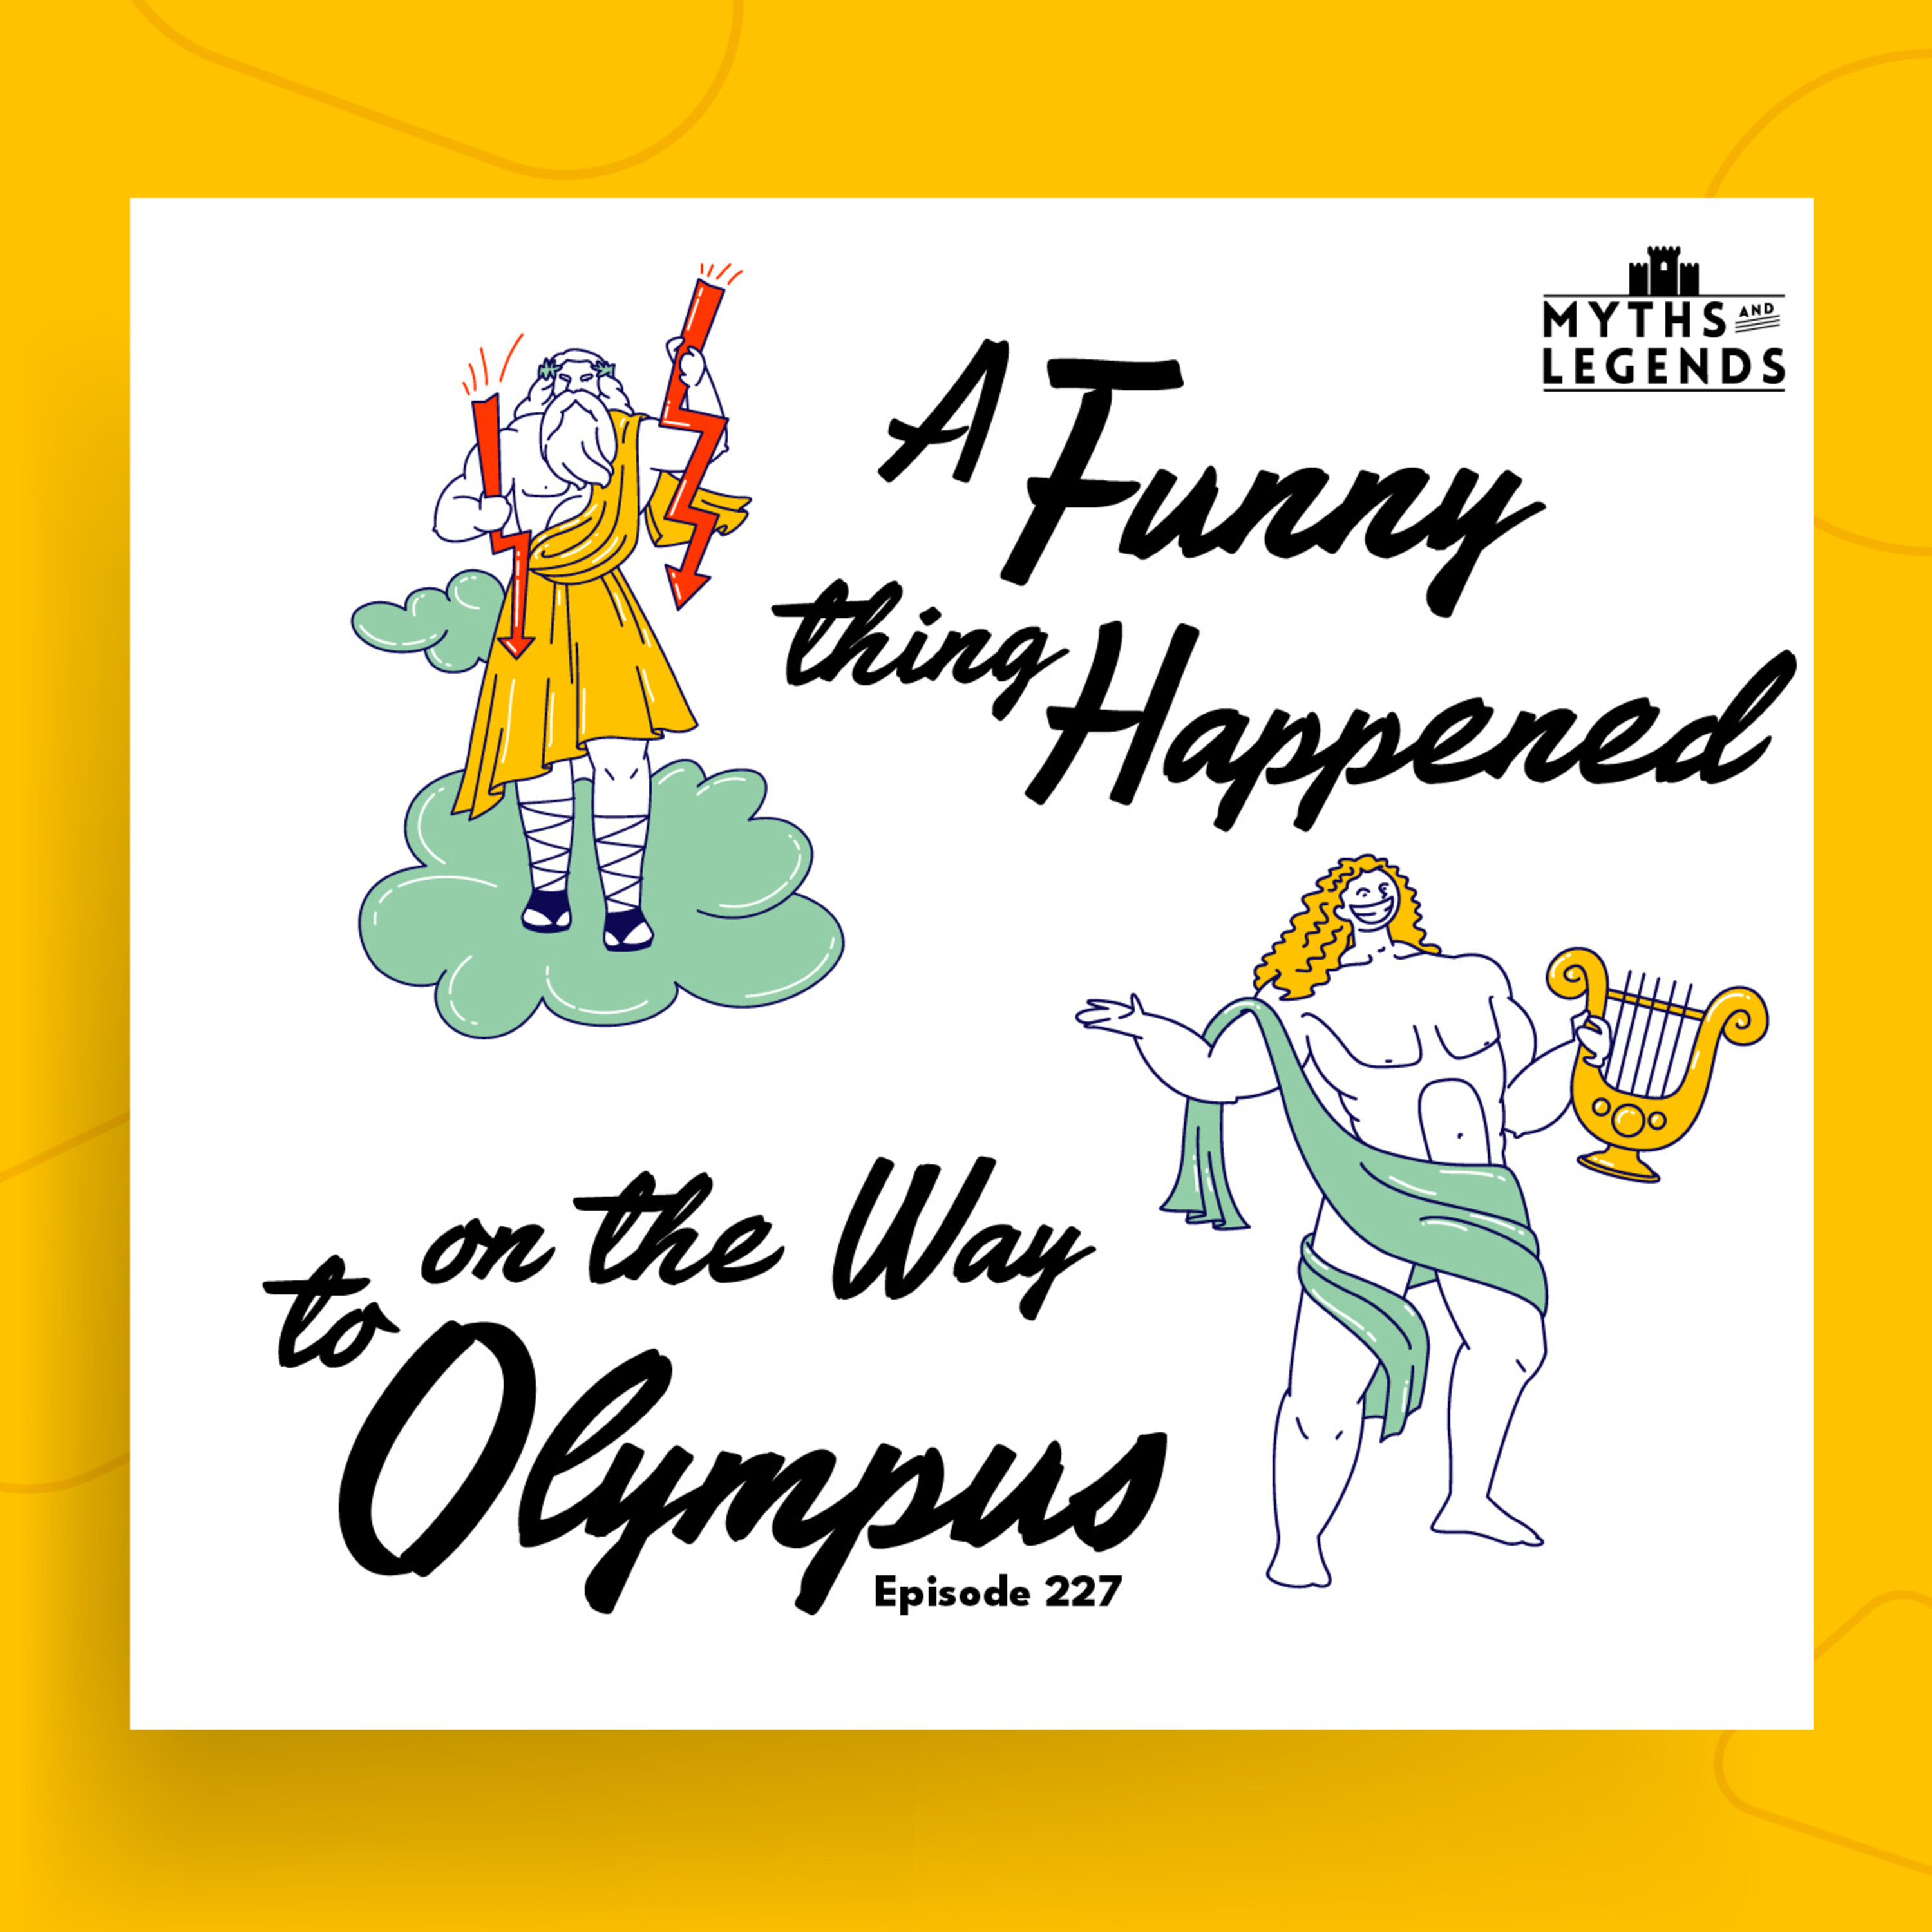 227-Greek/Roman Mythology: A Funny Thing Happened on the Way to Olympus